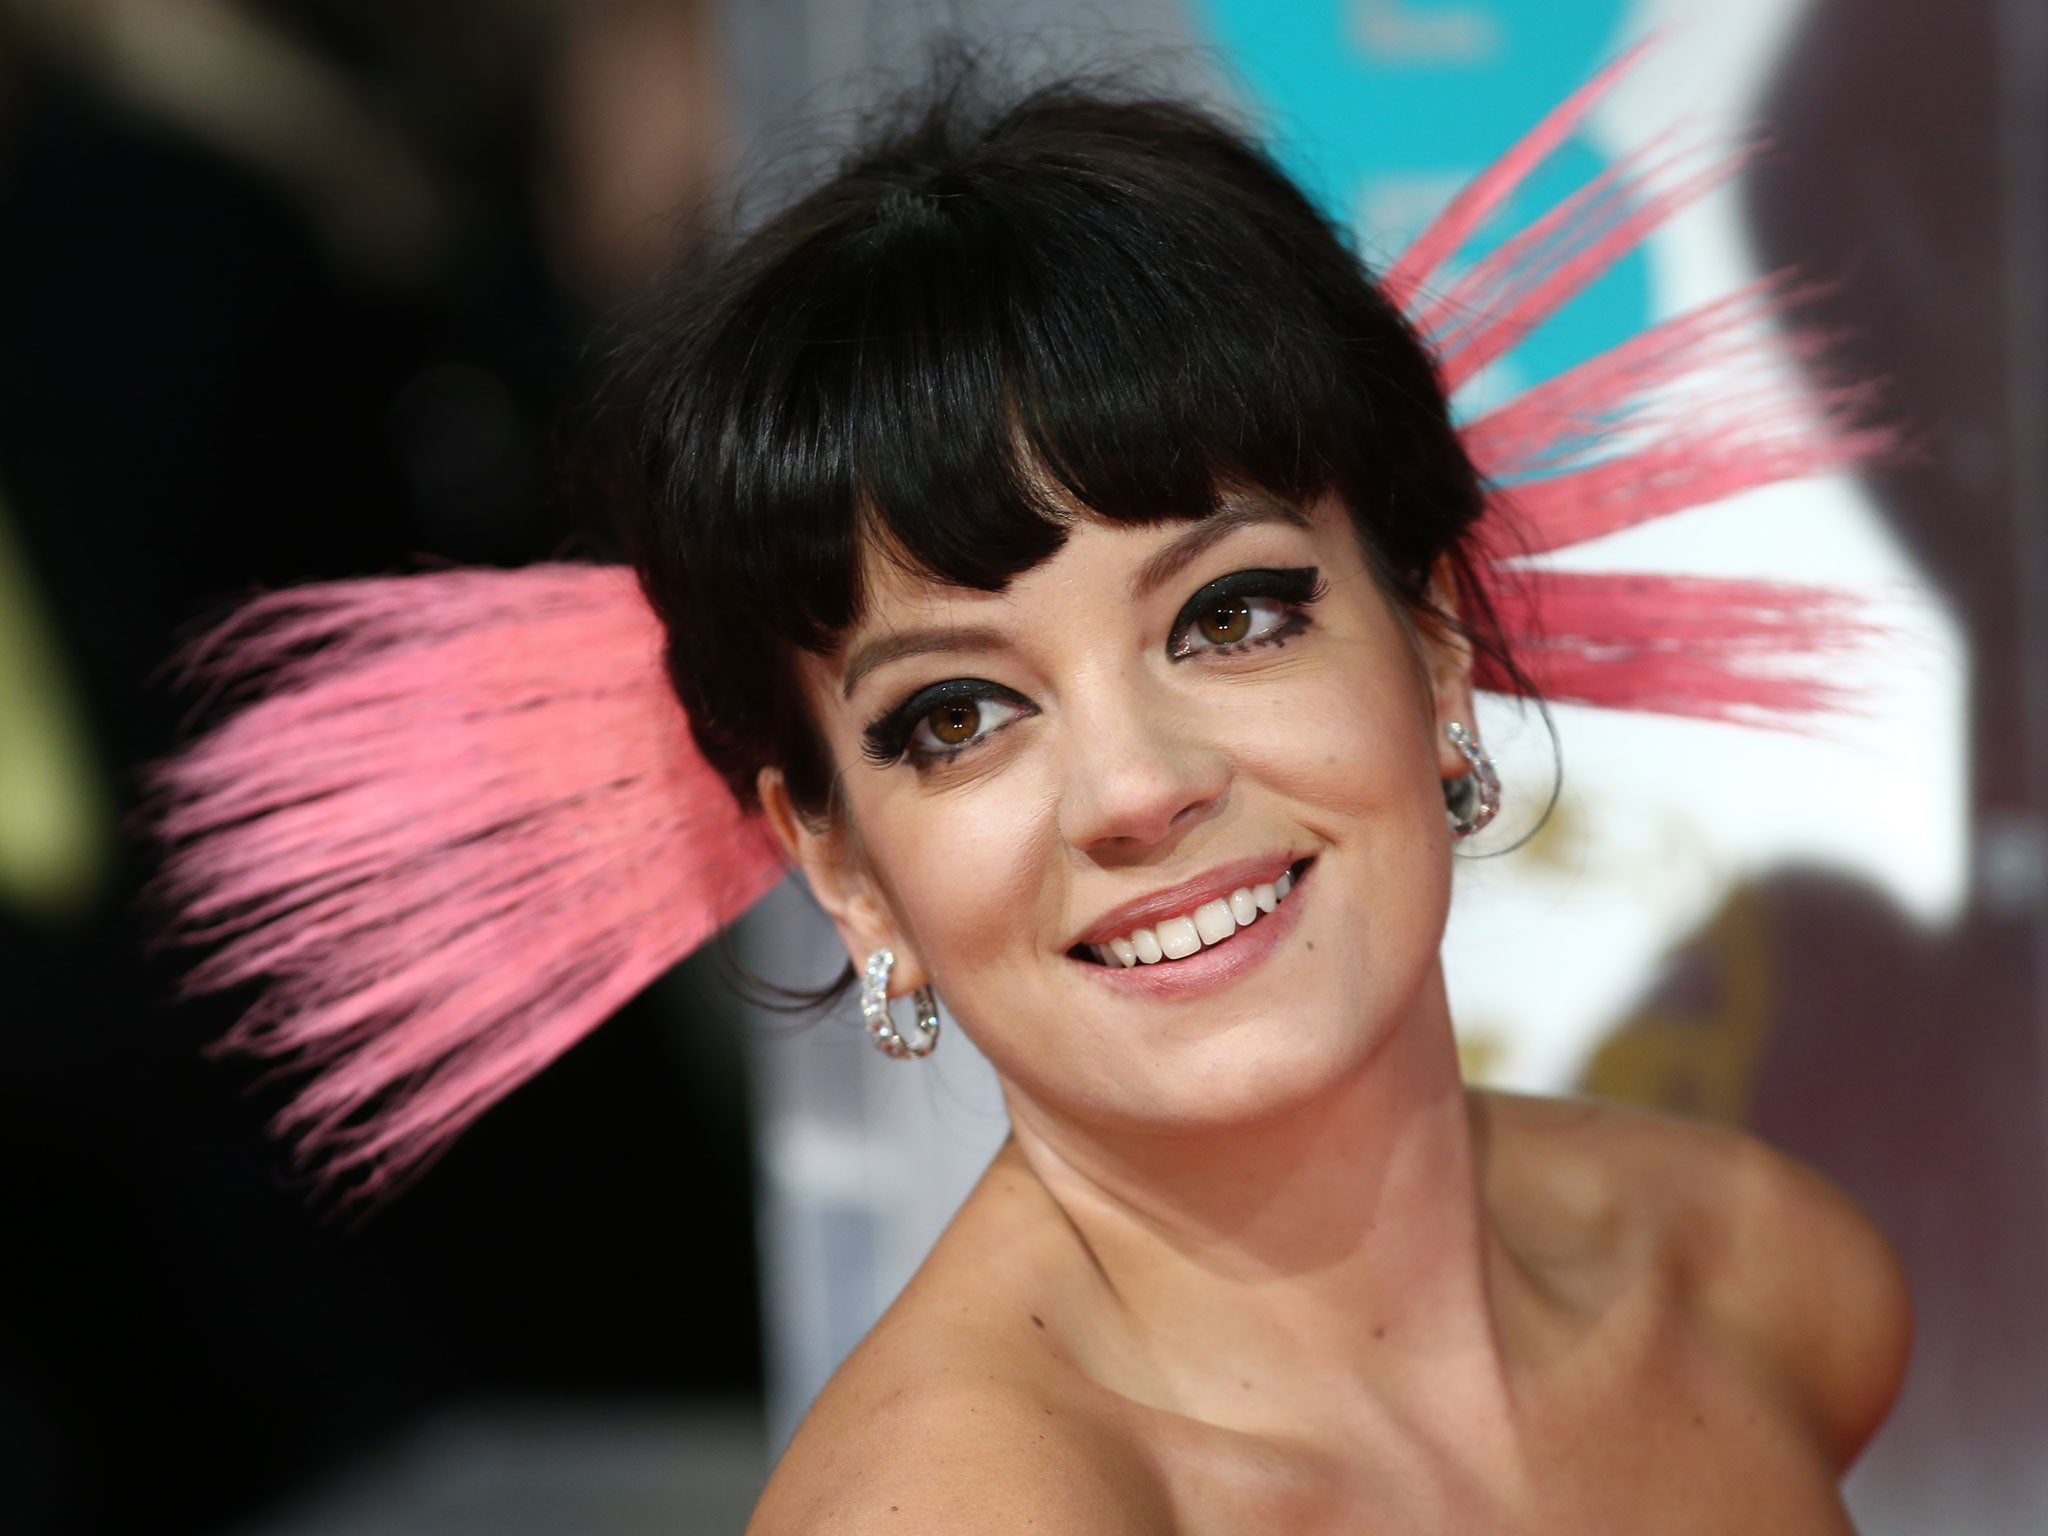 Lily allen dating history